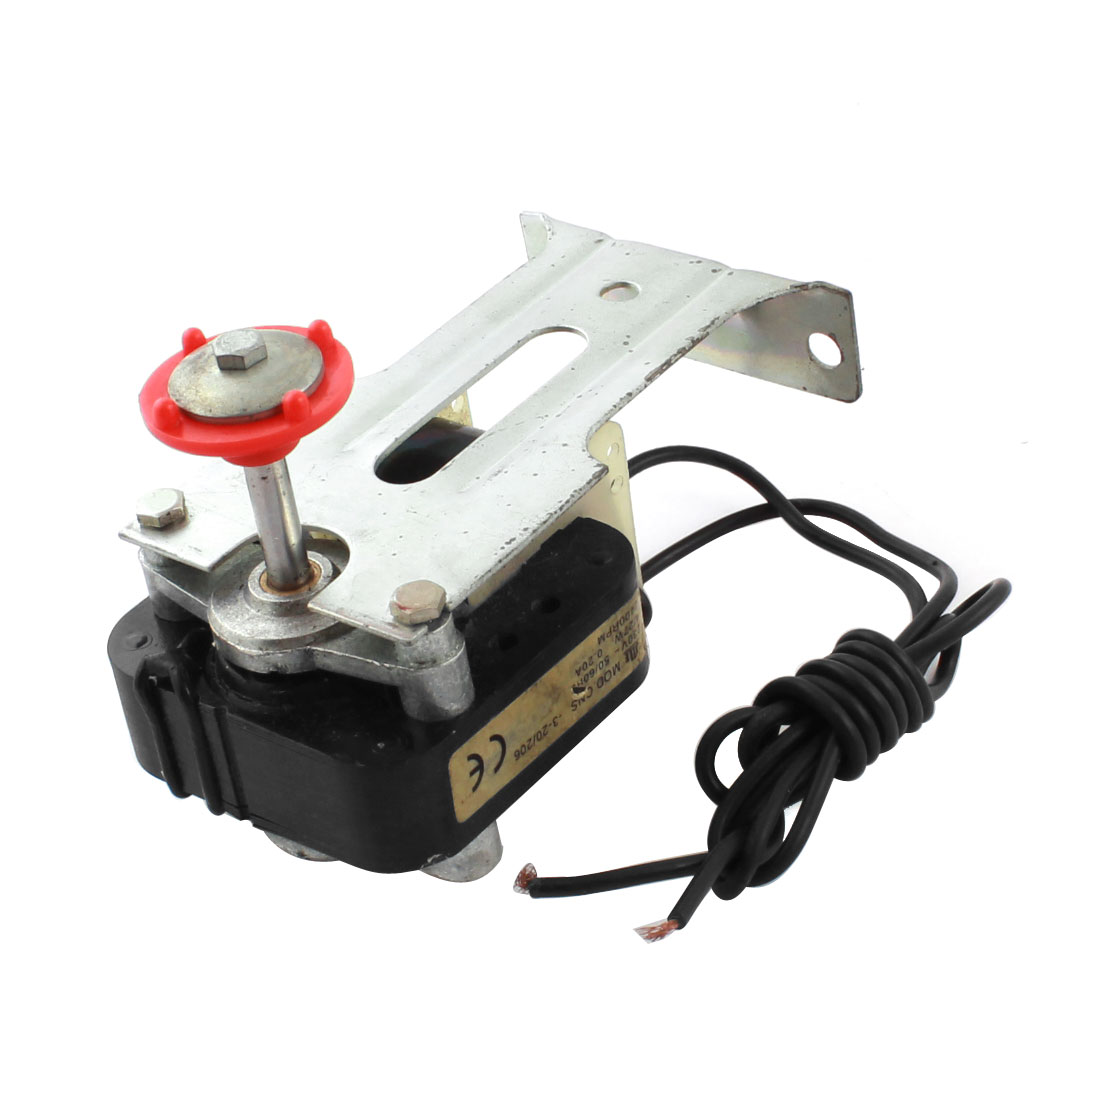 Hardware AC 230V 4/27W 2400RPM Motor for Freezer Refrigerator